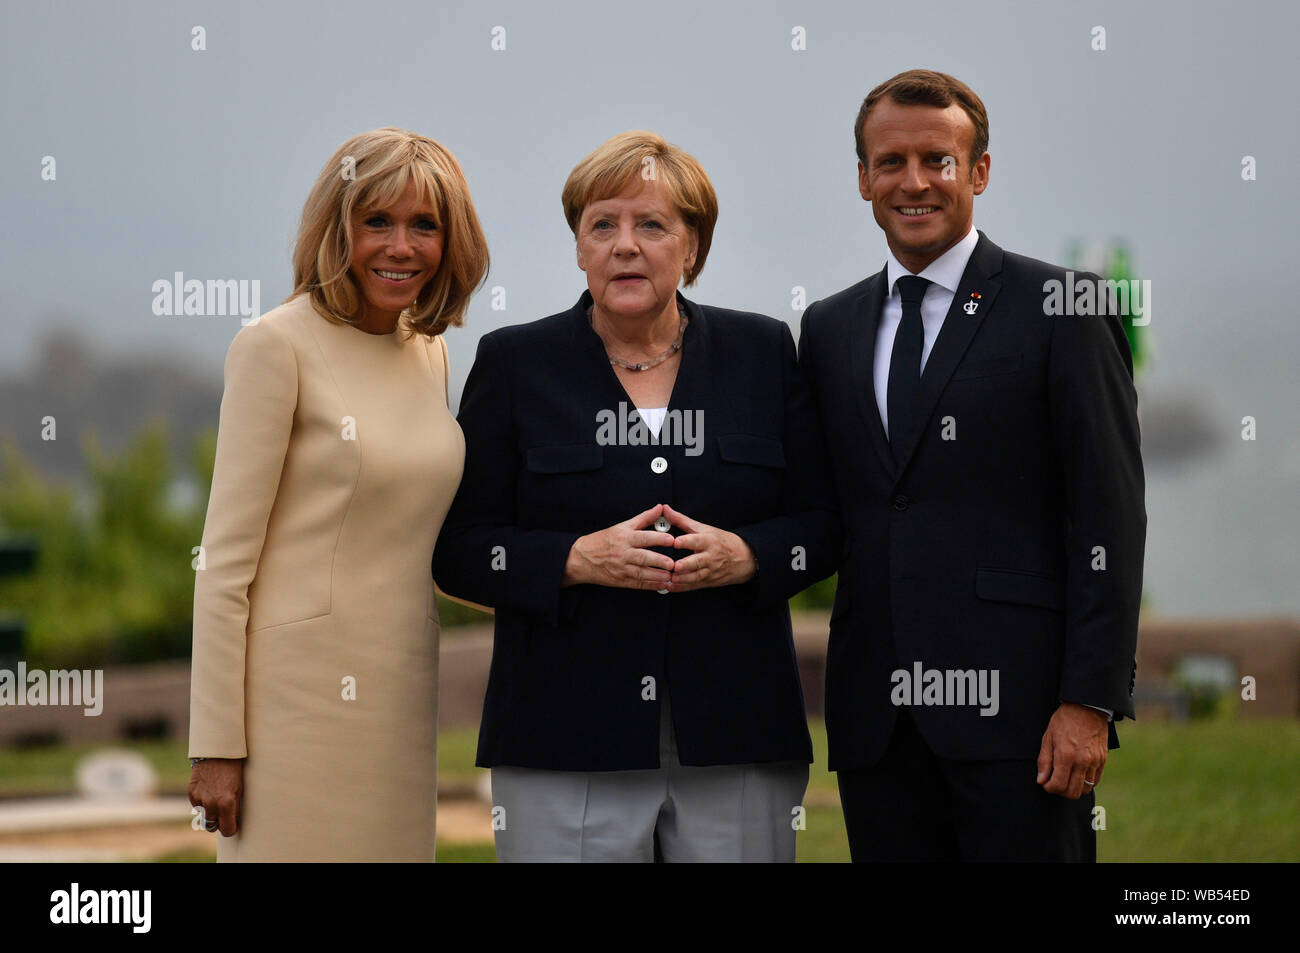 French President Emmanuel Macron And His Wife Brigitte Trogneux Meet German Chancellor Angela Merkel Centre At The Official Welcome During The G7 Summit In Biarritz France Stock Photo Alamy